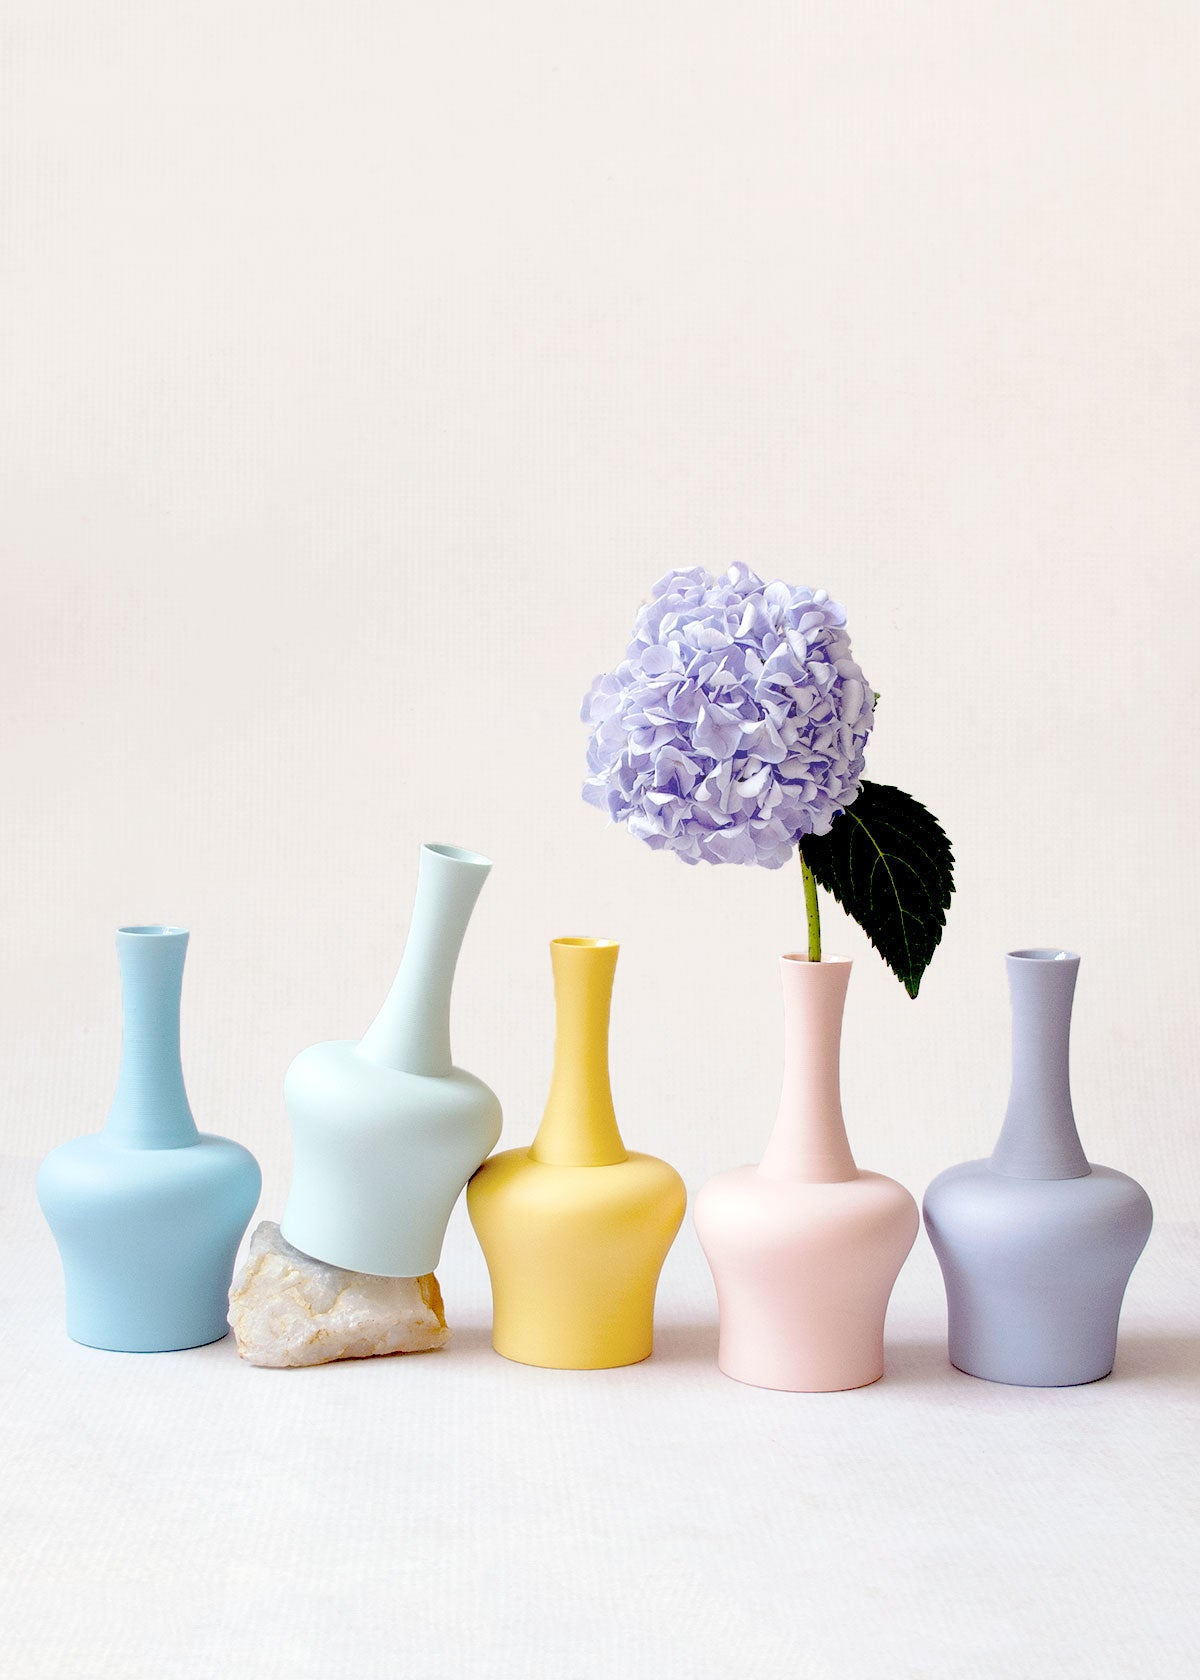 Middle Kingdom Porcelain Mini Vase